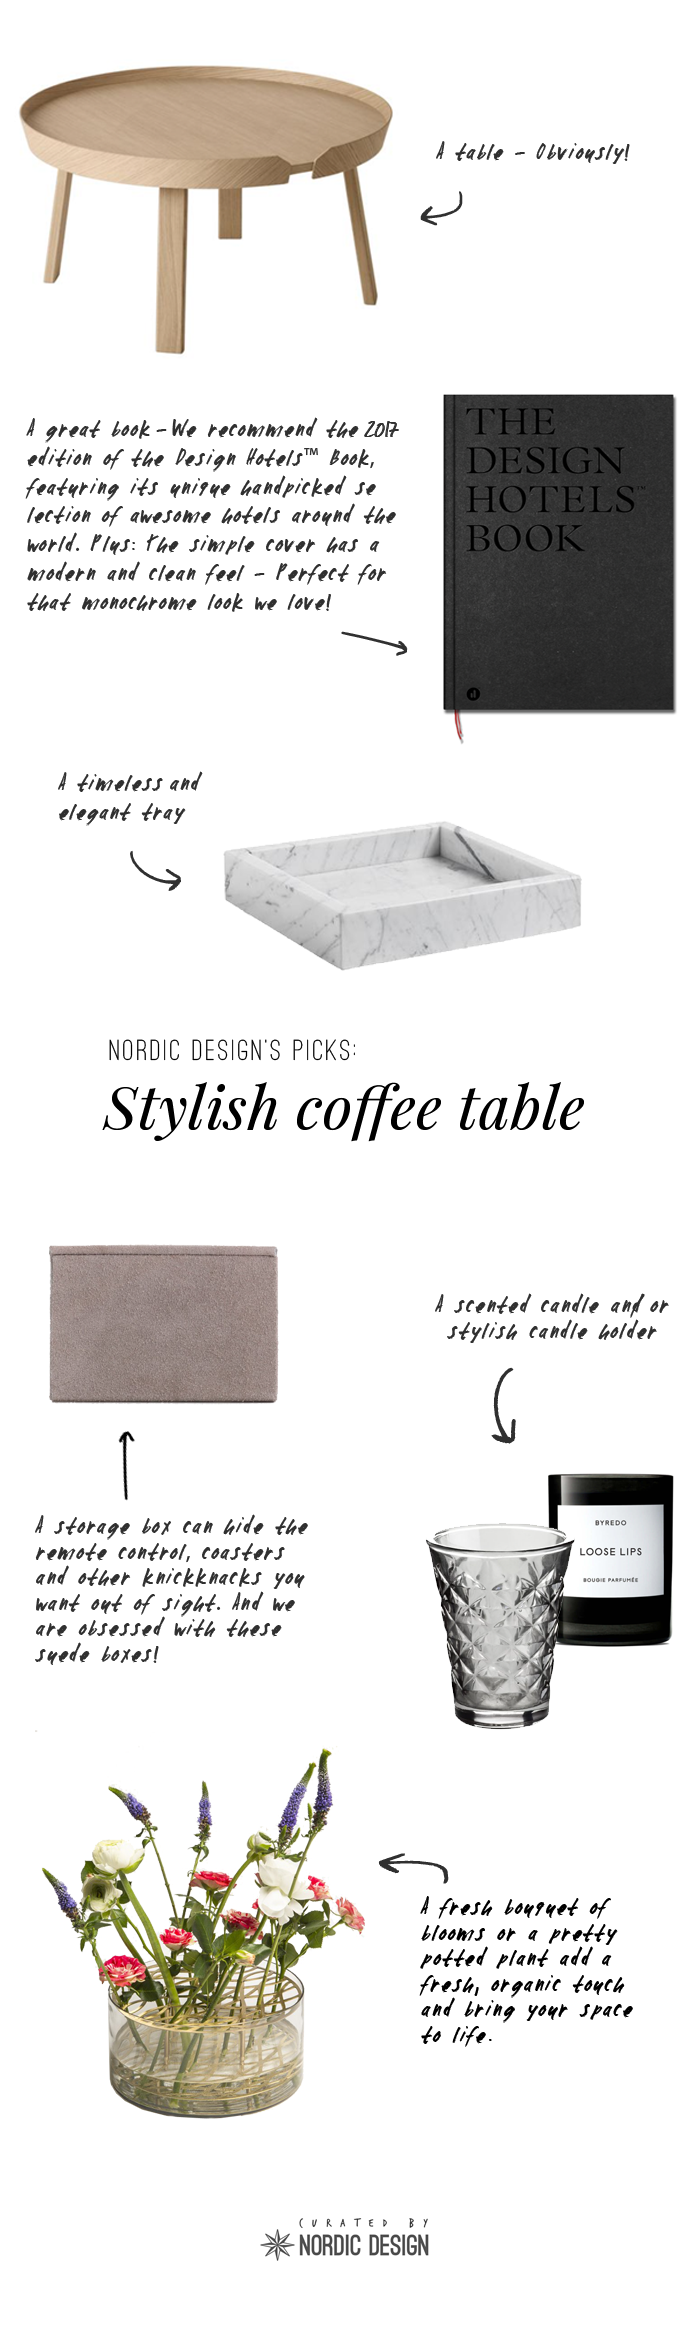 Style-A-Coffee-Table-NordicDesign